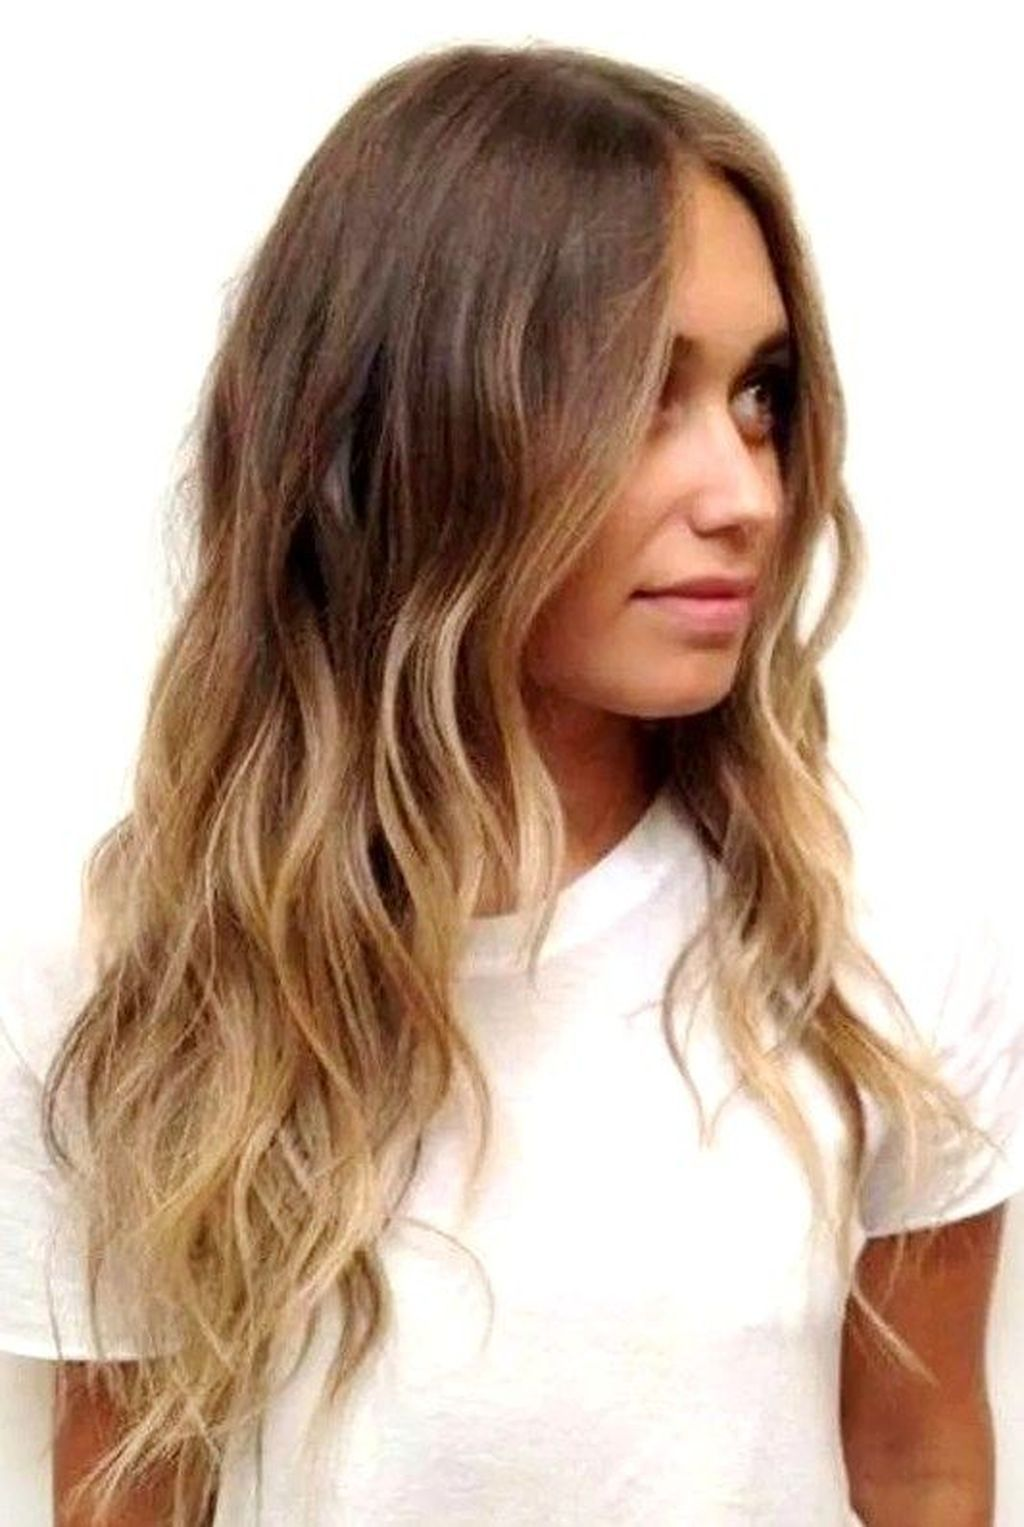 20+ Charming Winter Hairstyles Ideas For School - OUTFITS4YOU